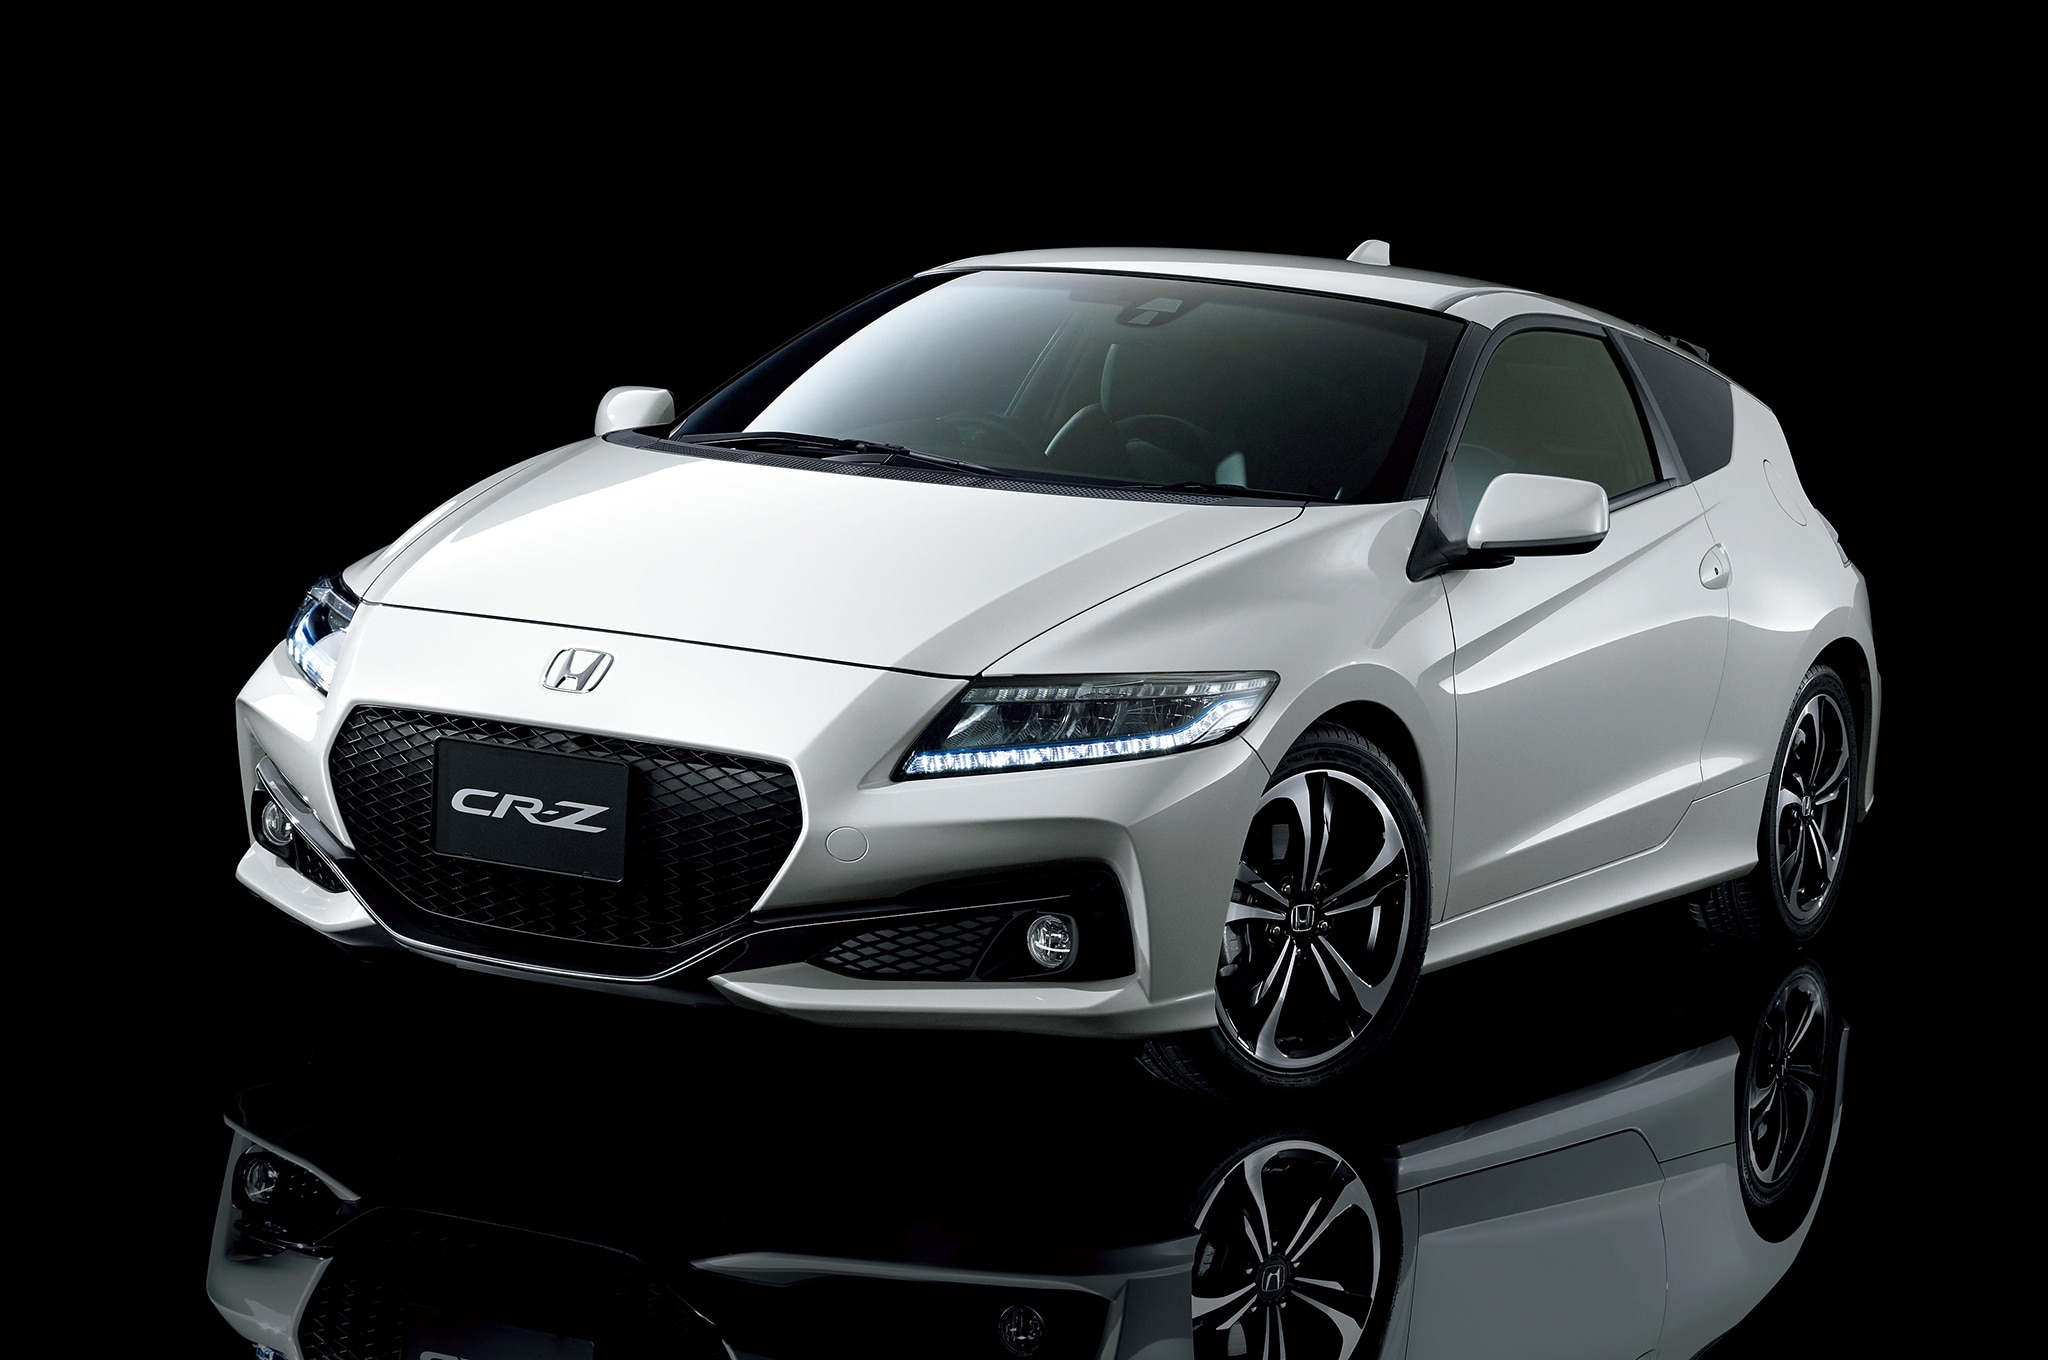 Honda CR-Z Hybrid Refreshed for Japan